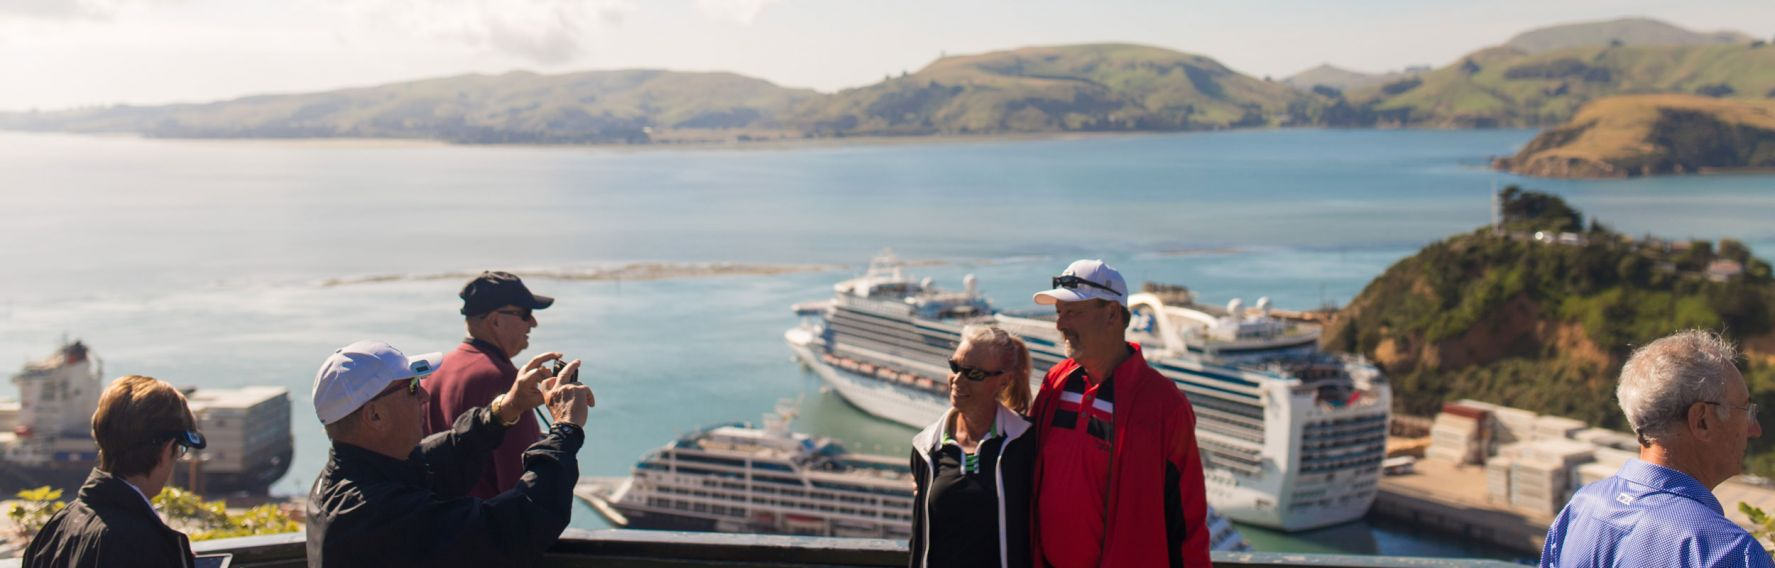 Sightseeing at Port Chalmers